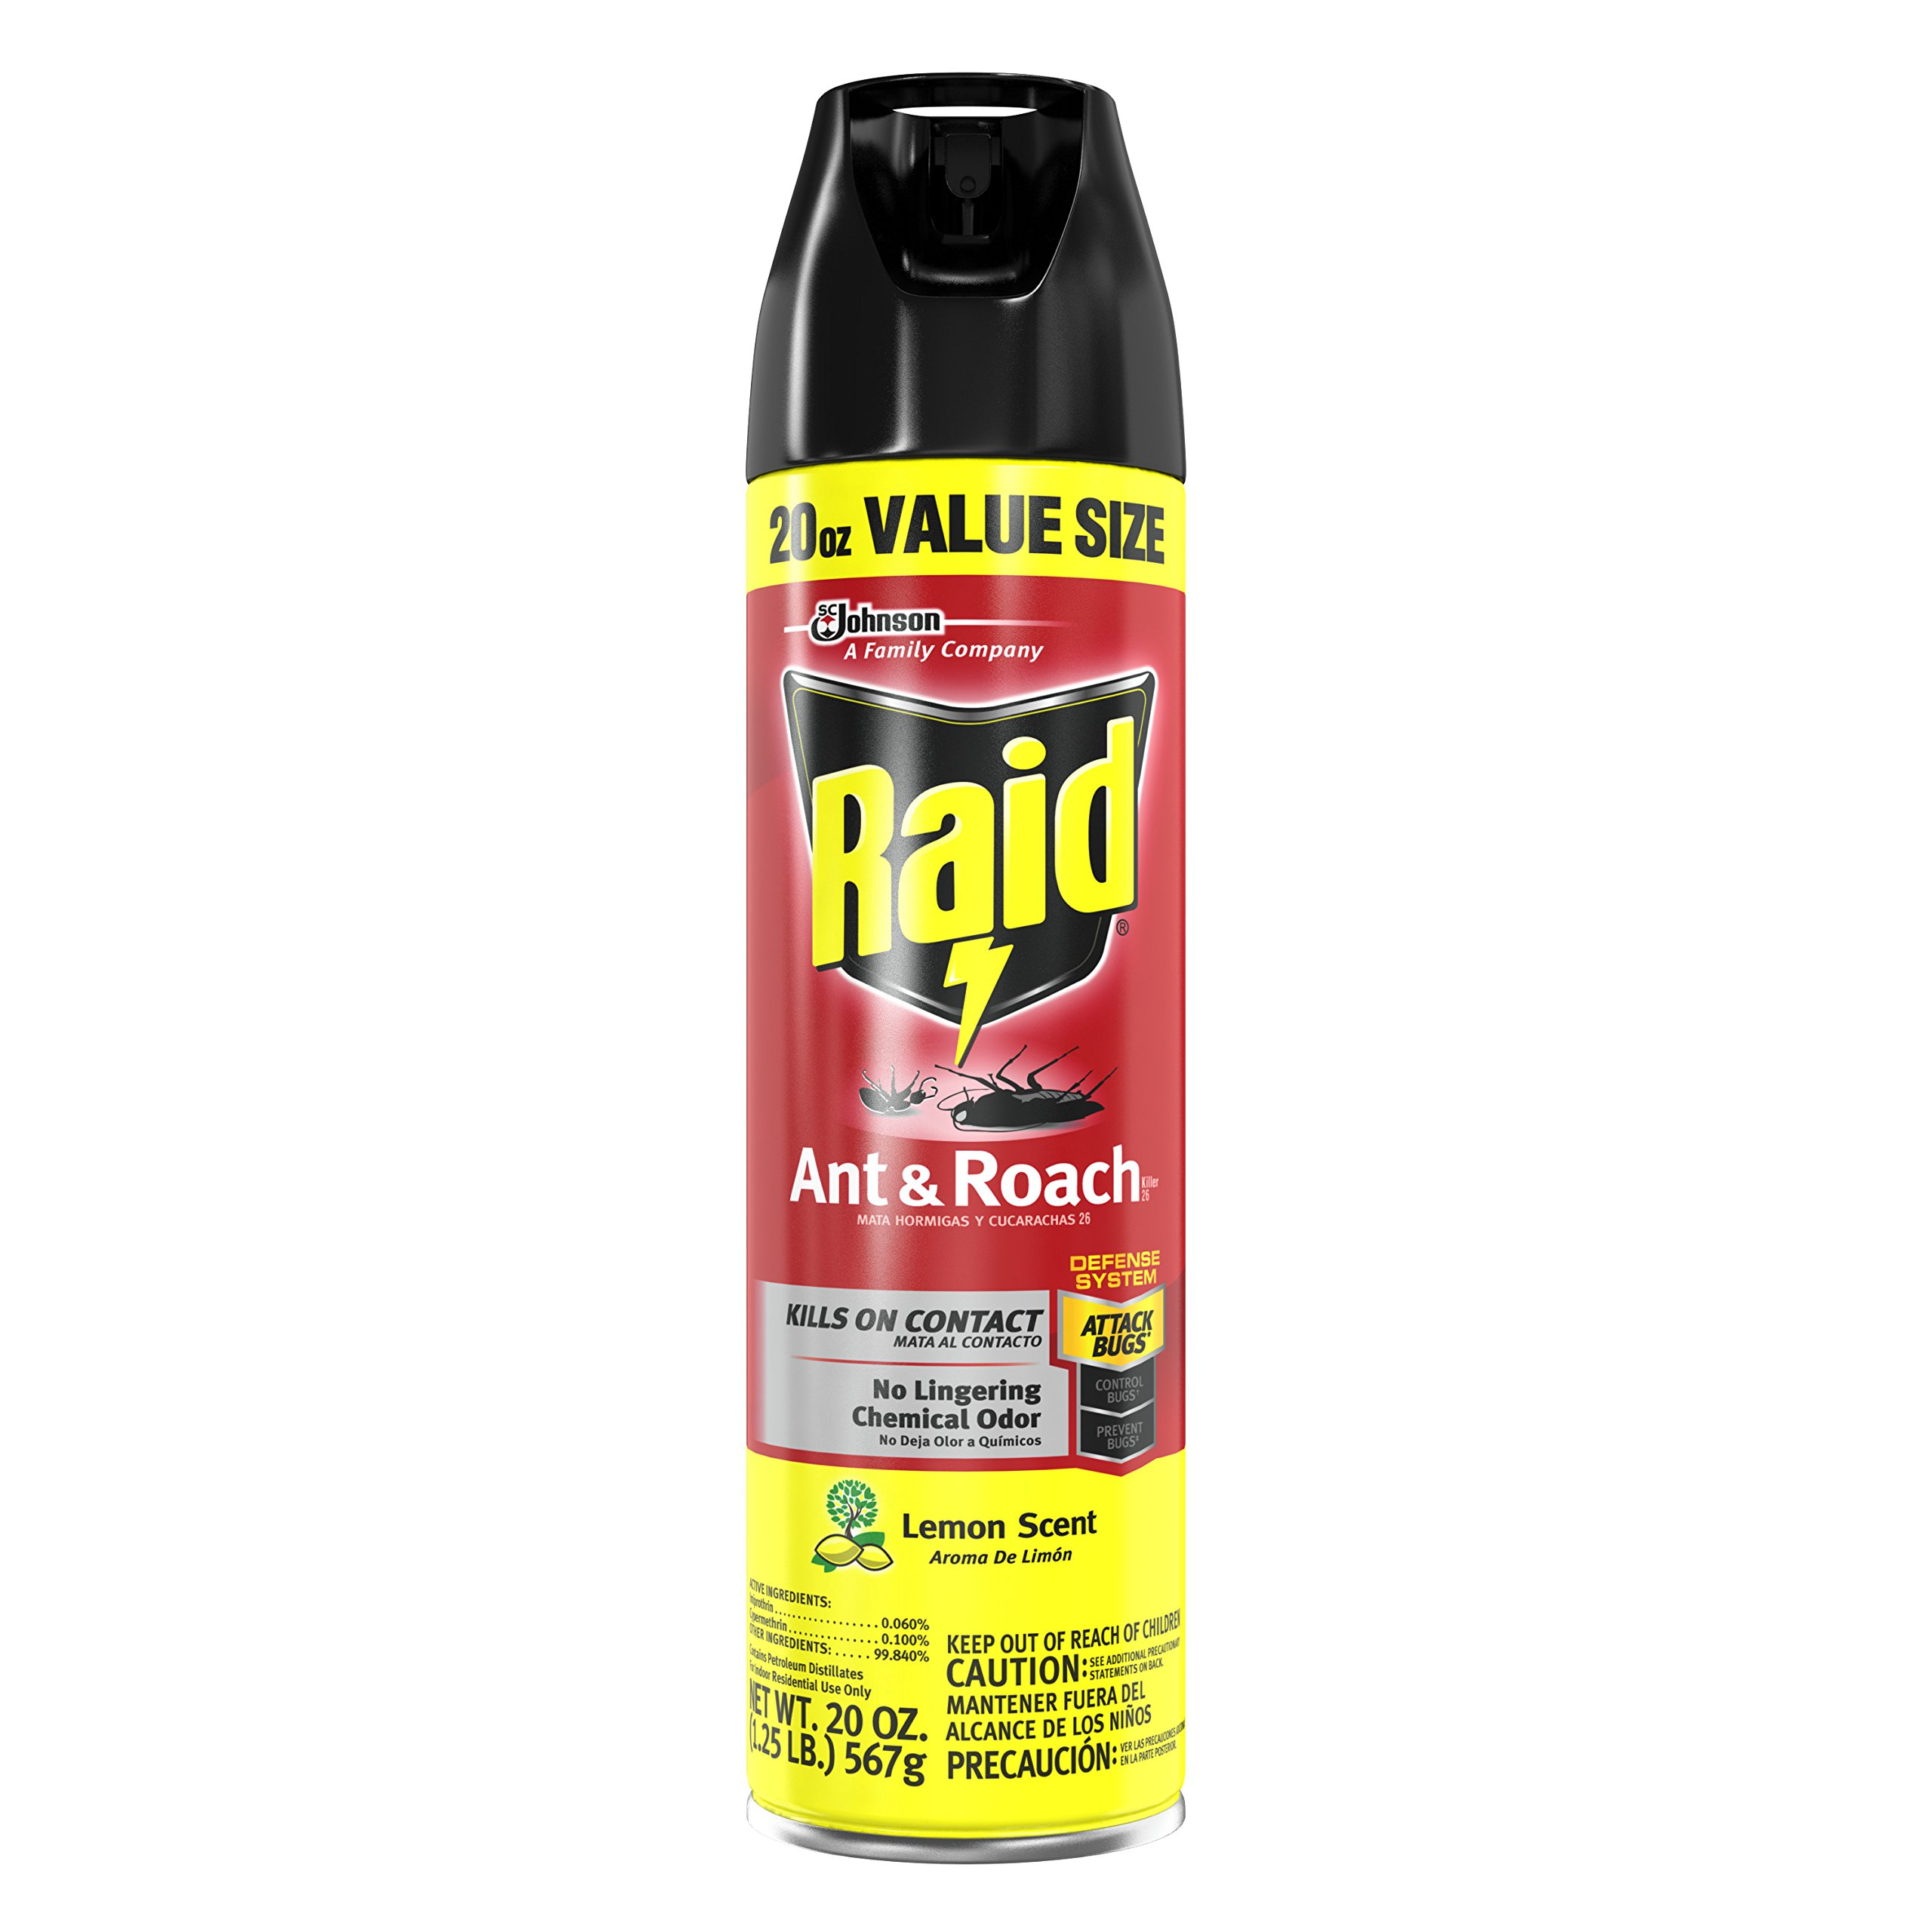 Raid Ant & Roach Killer Spray for Listed Bugs, Insect, Spider, For Indoor Use, Lemon Scent, 20 Oz, Pack of 1